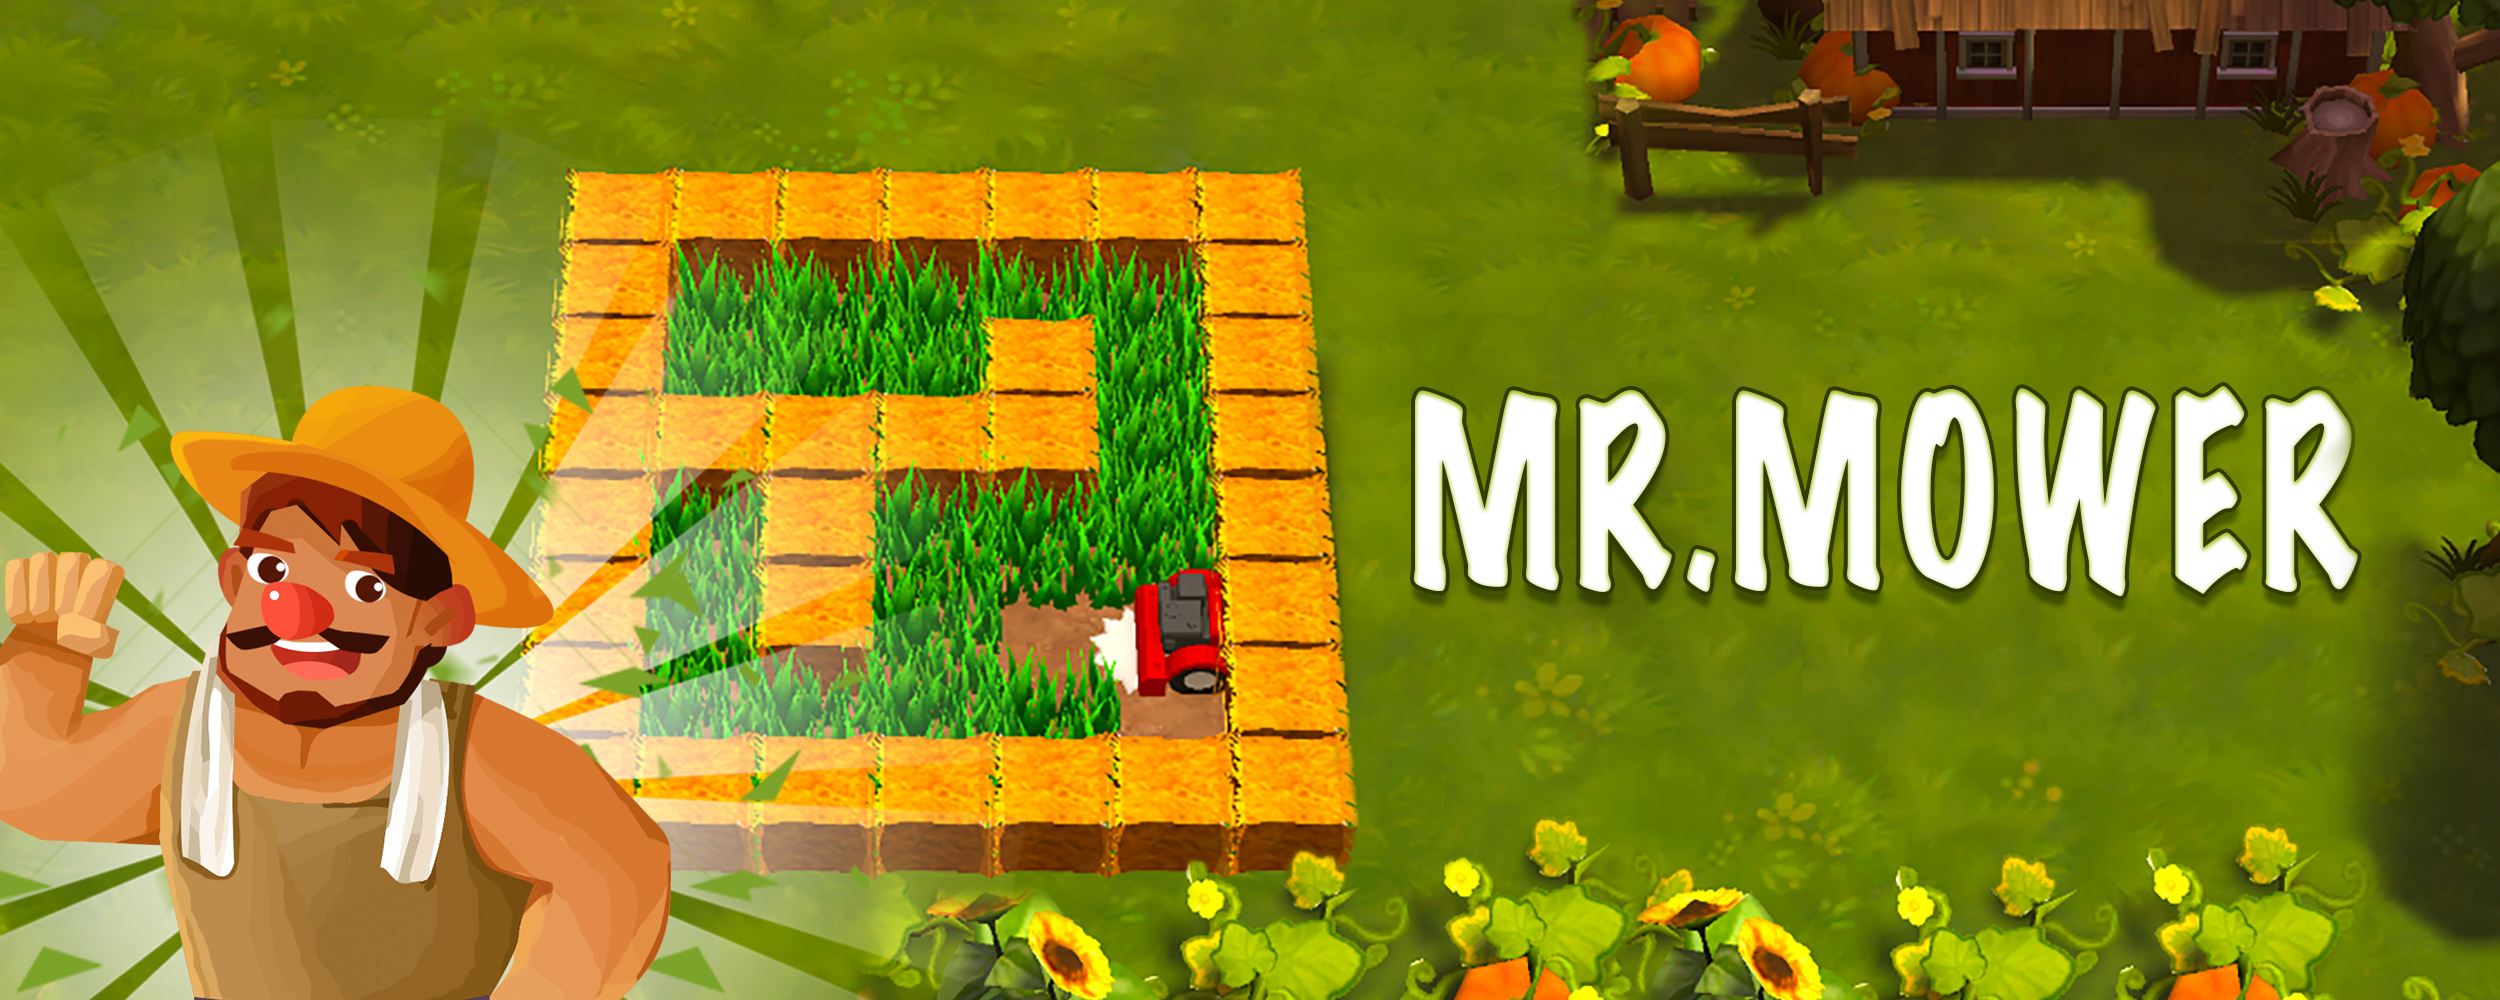 Mr.Mower.jpg